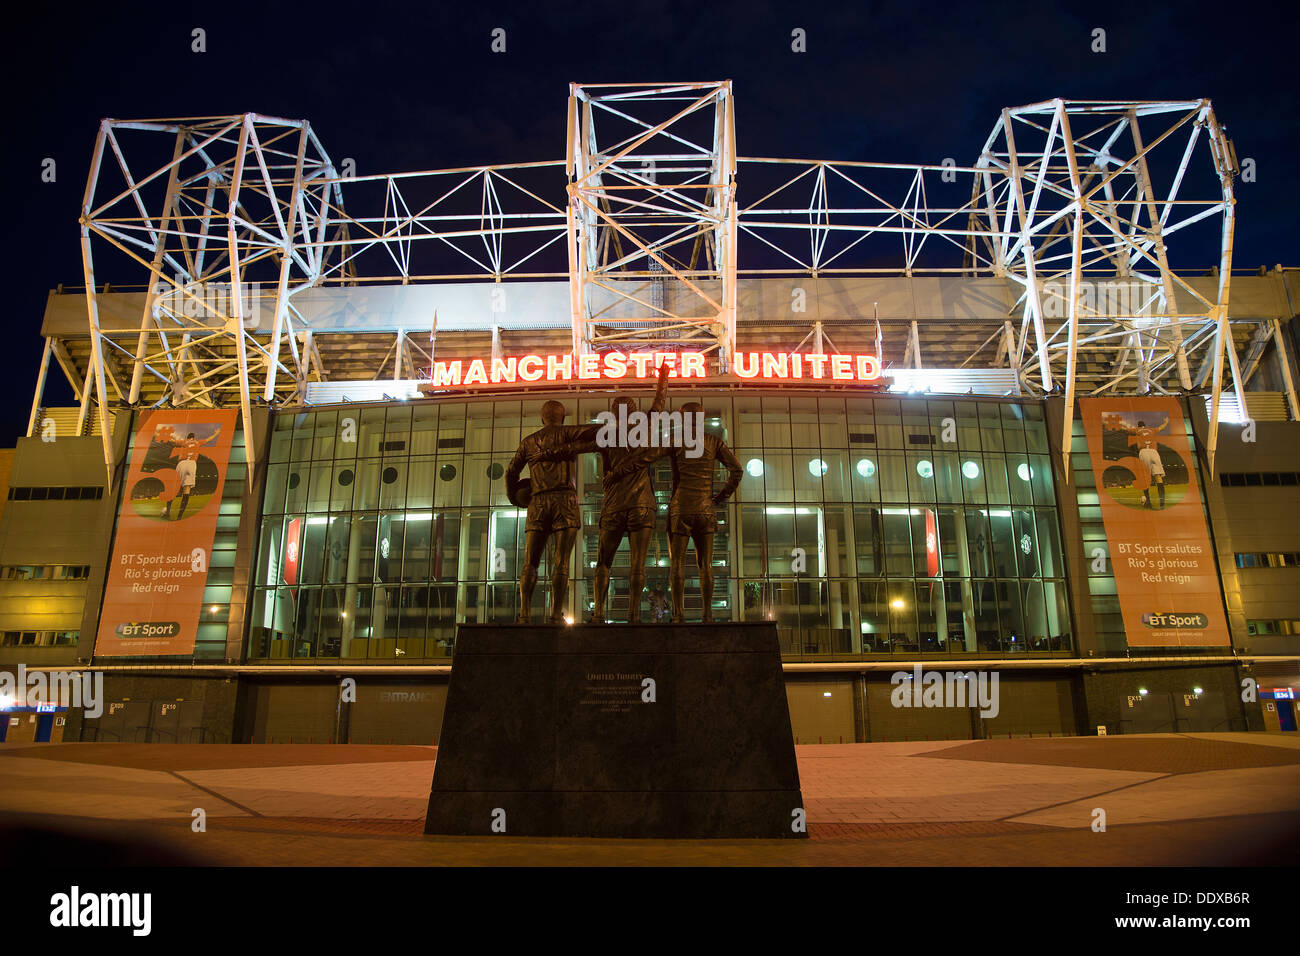 The East Stand of Old Trafford, Manchester United's Football Stadium at night. - Stock Image